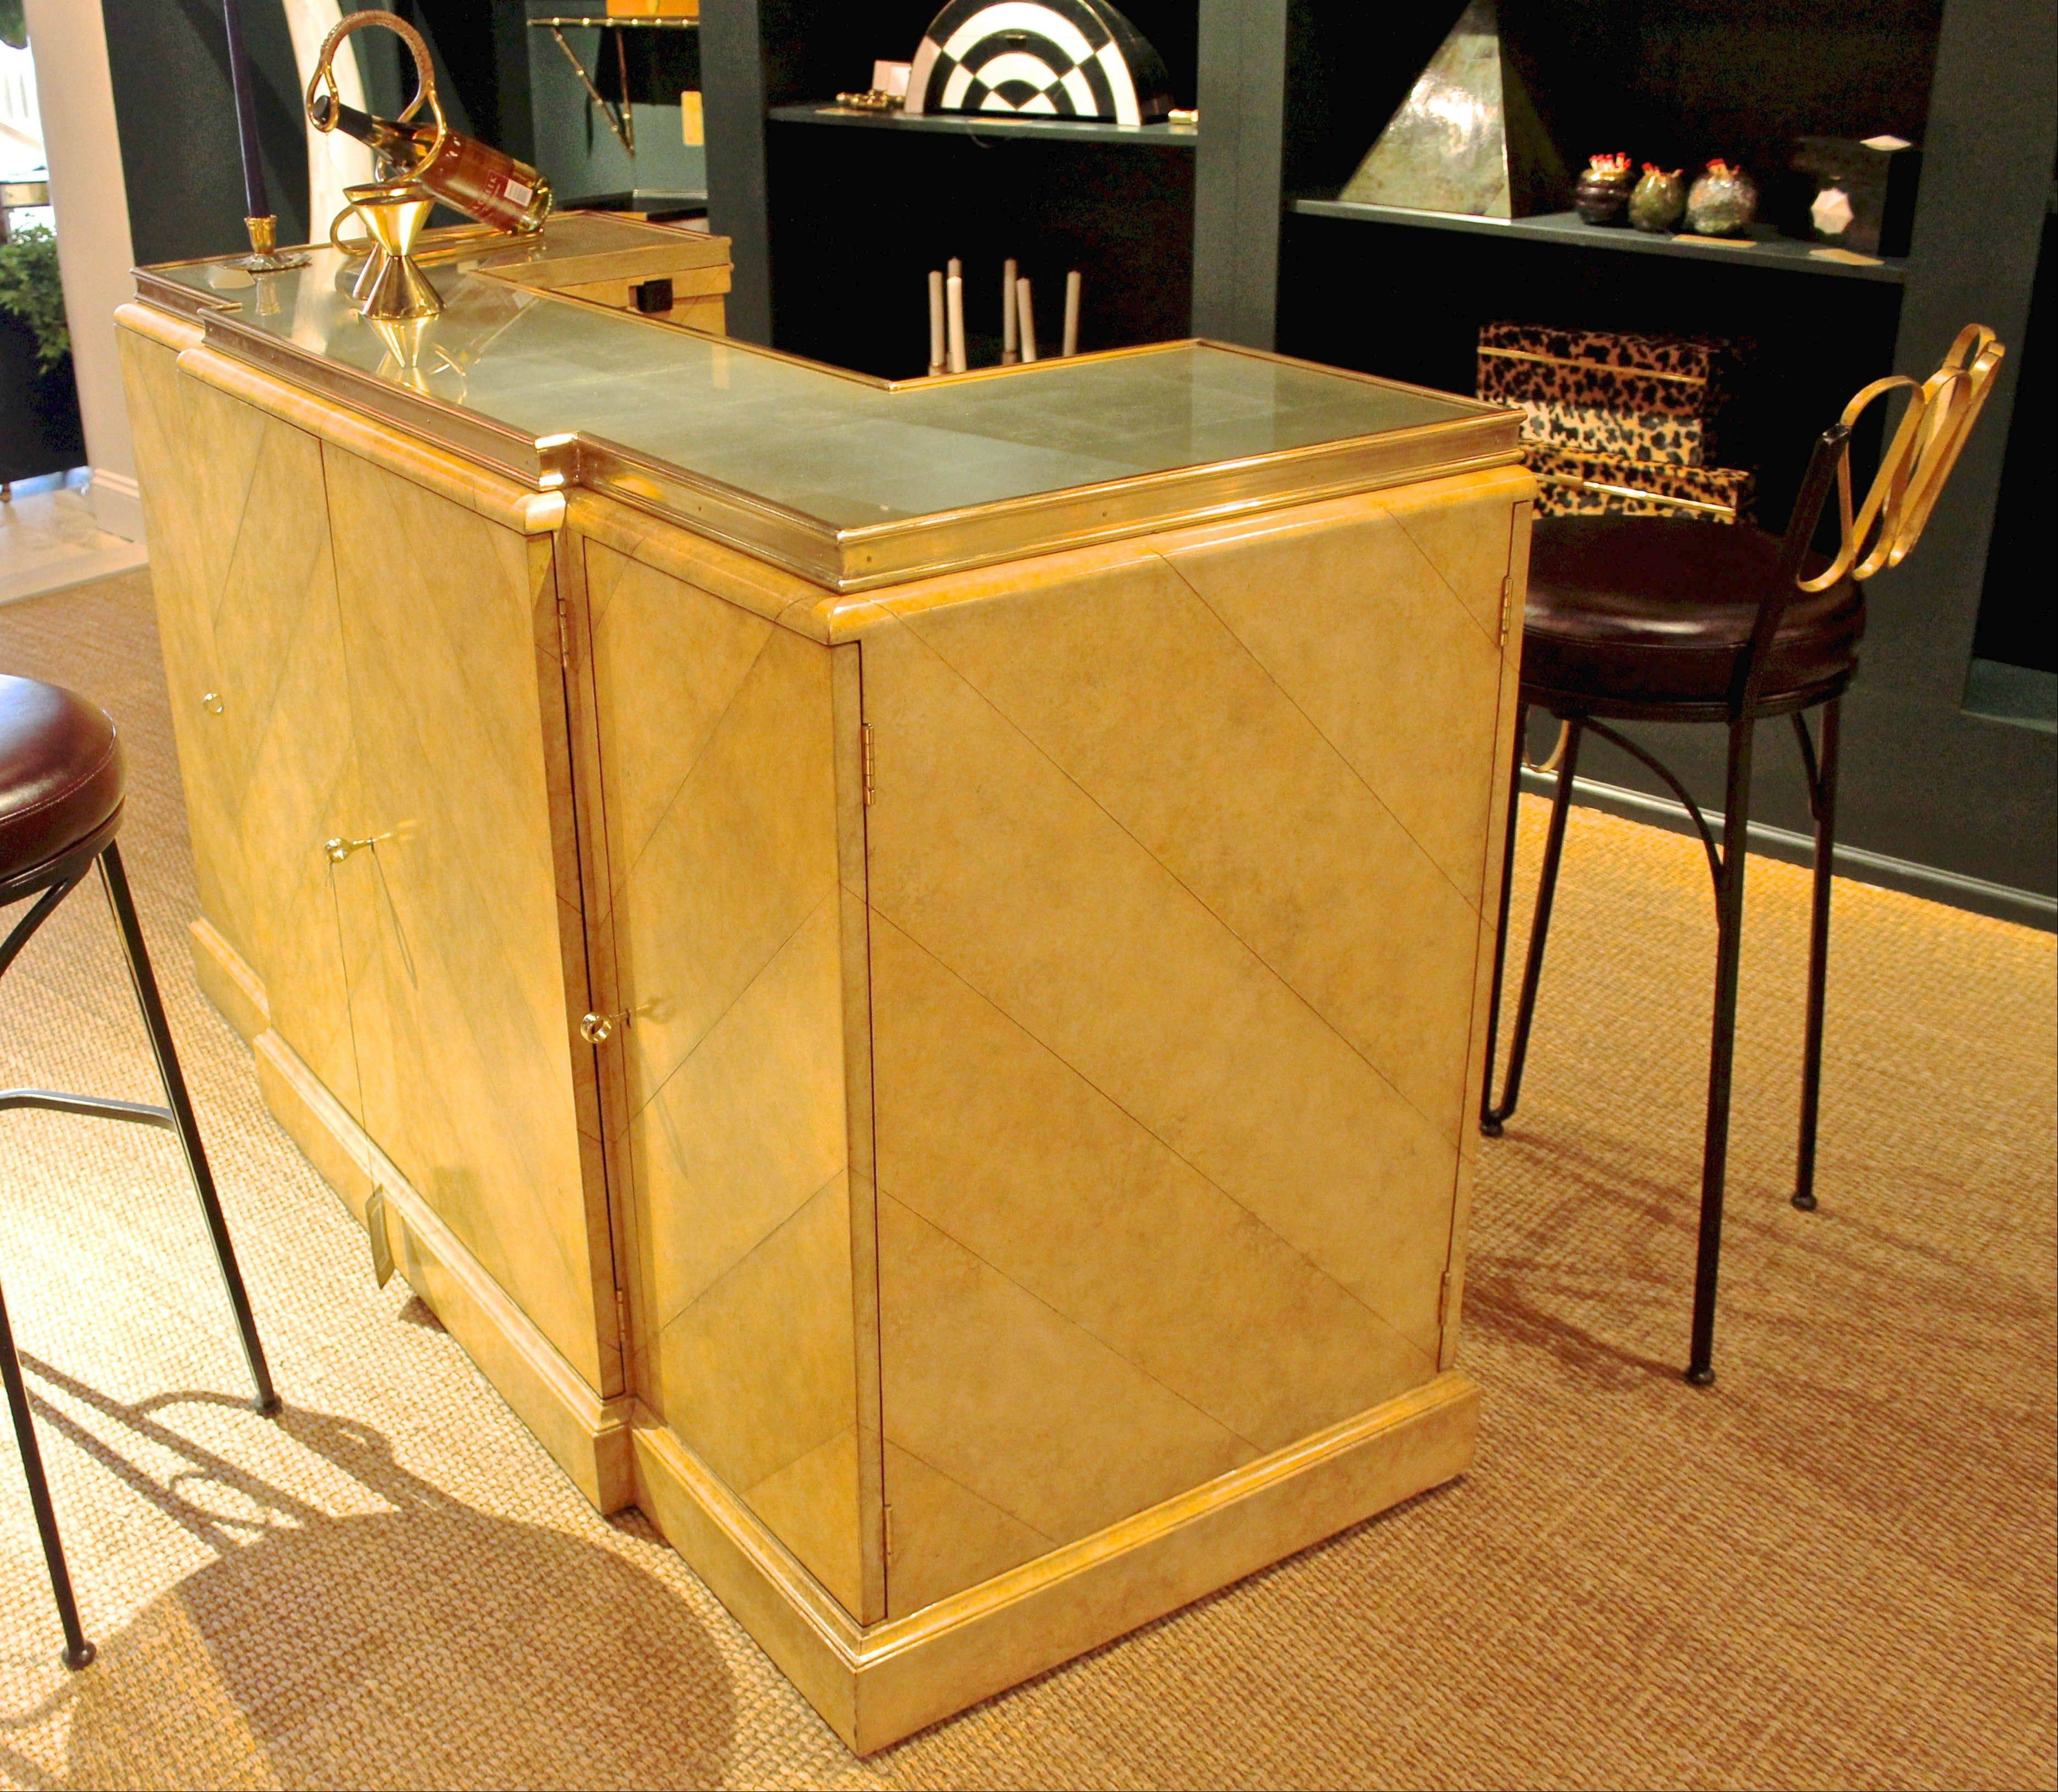 A parchment lacquered leather inlaid bar with silver eglomise top was designed by Celerie Kemble for Maitland-Smith.